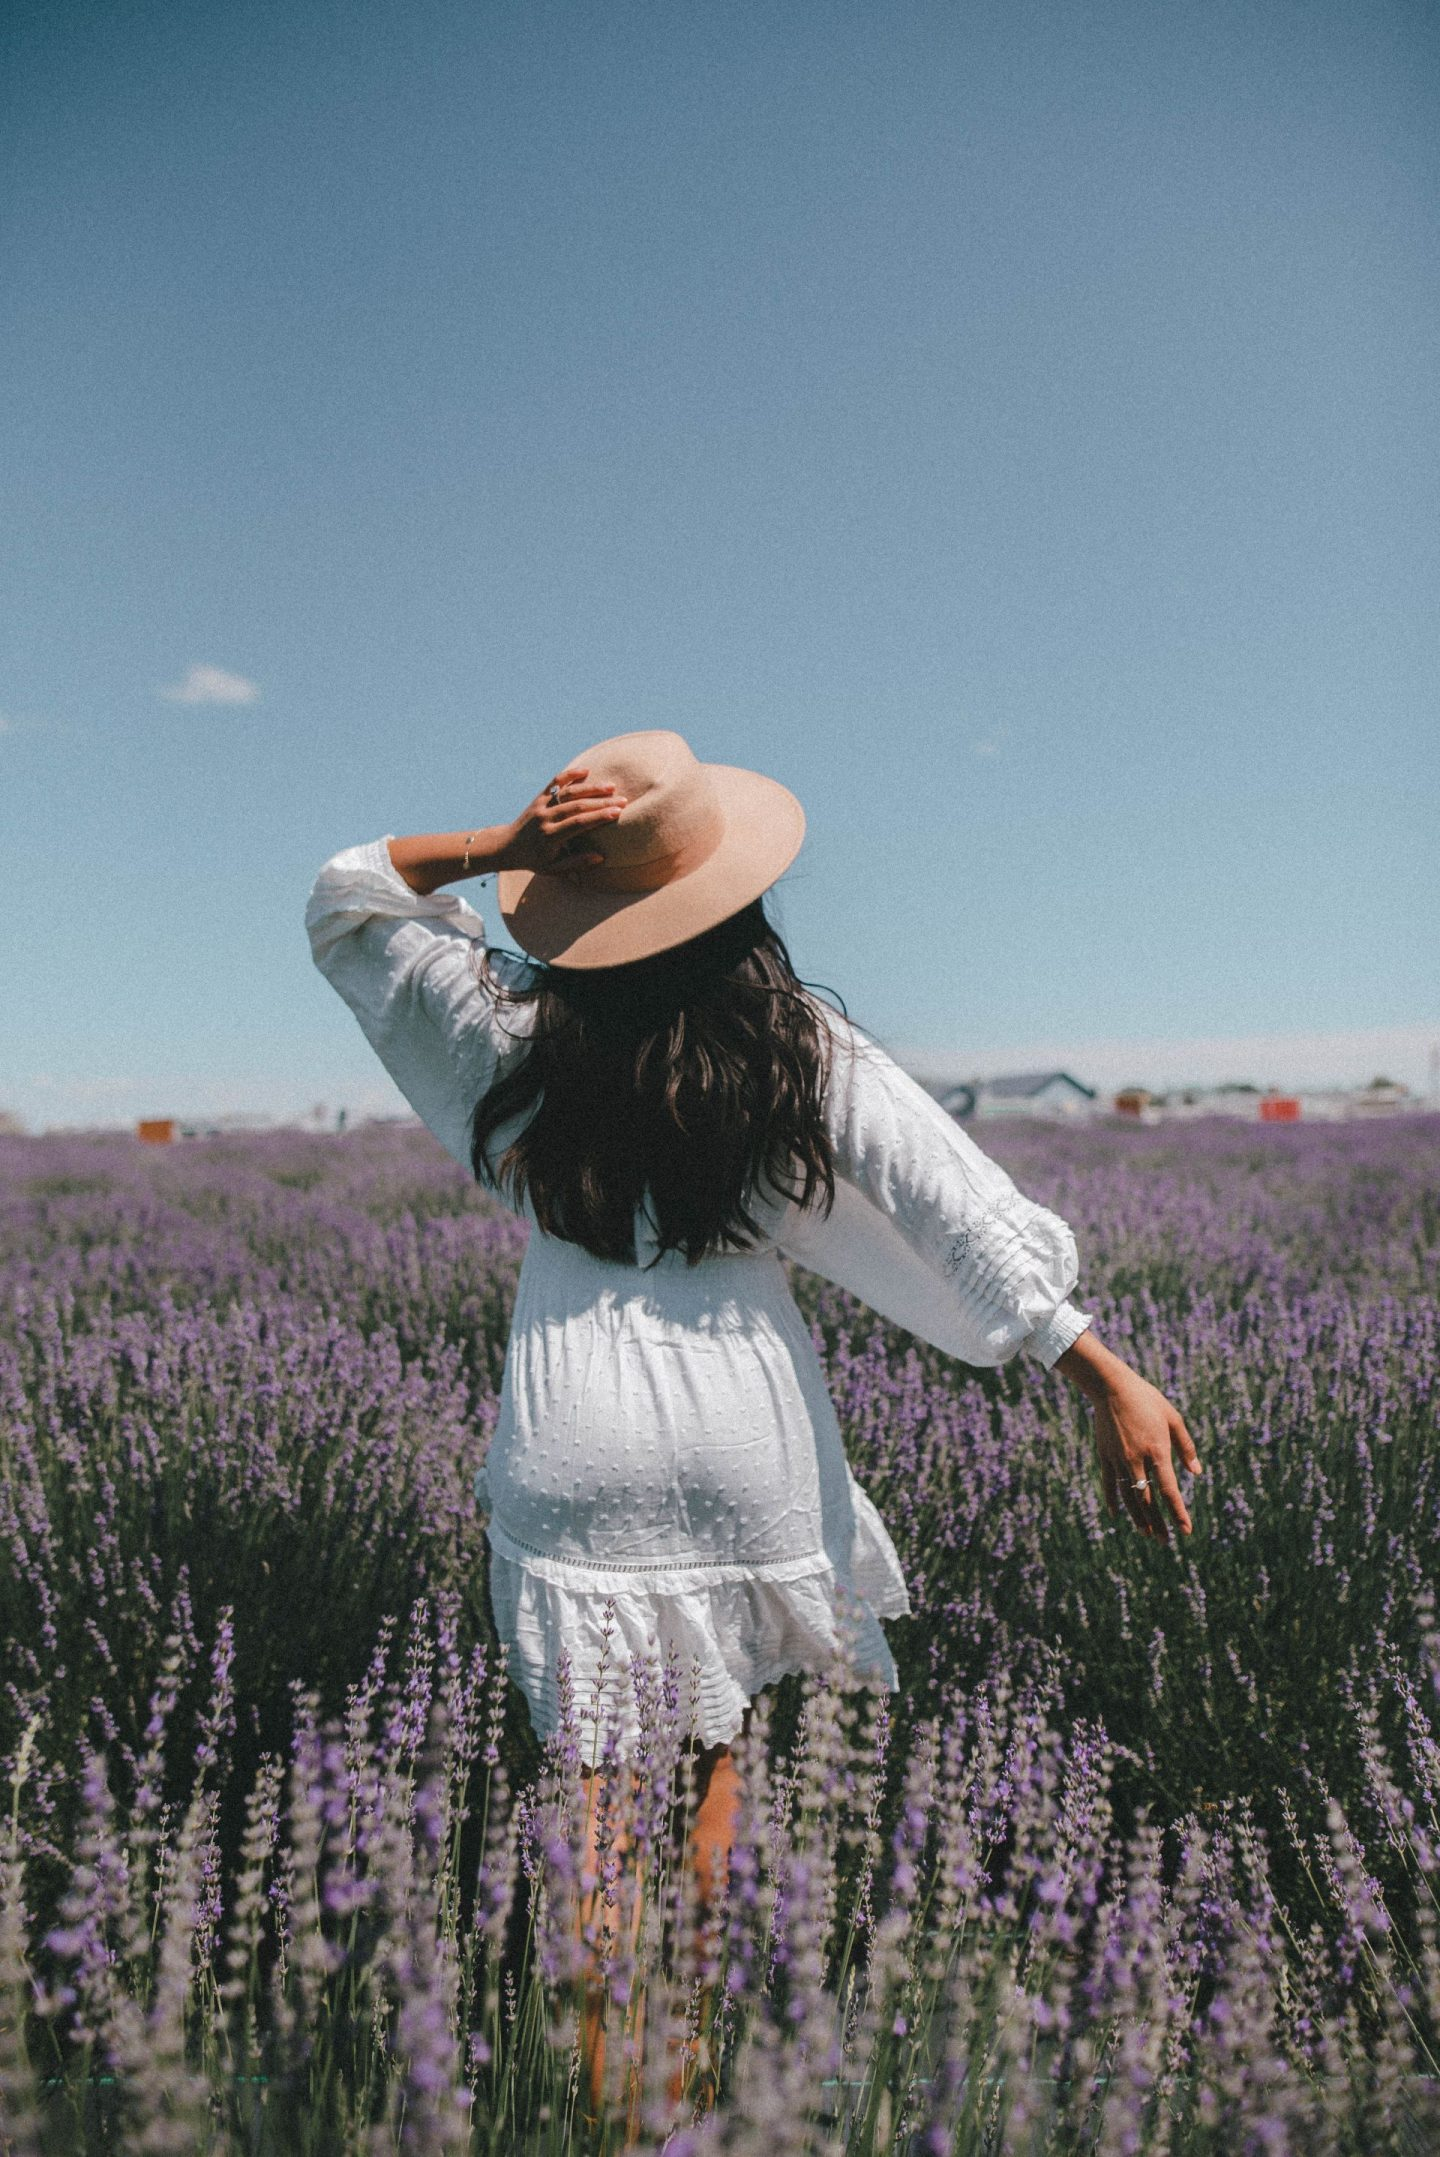 Lavender field aesthetic – lavender field photo shoot outfit – lavender field – lavender field dress – Emma's Edition – things to do in Eastern Washington – Explore Washington State - Seattle blogger – Eastern Washington – Quincy Washington